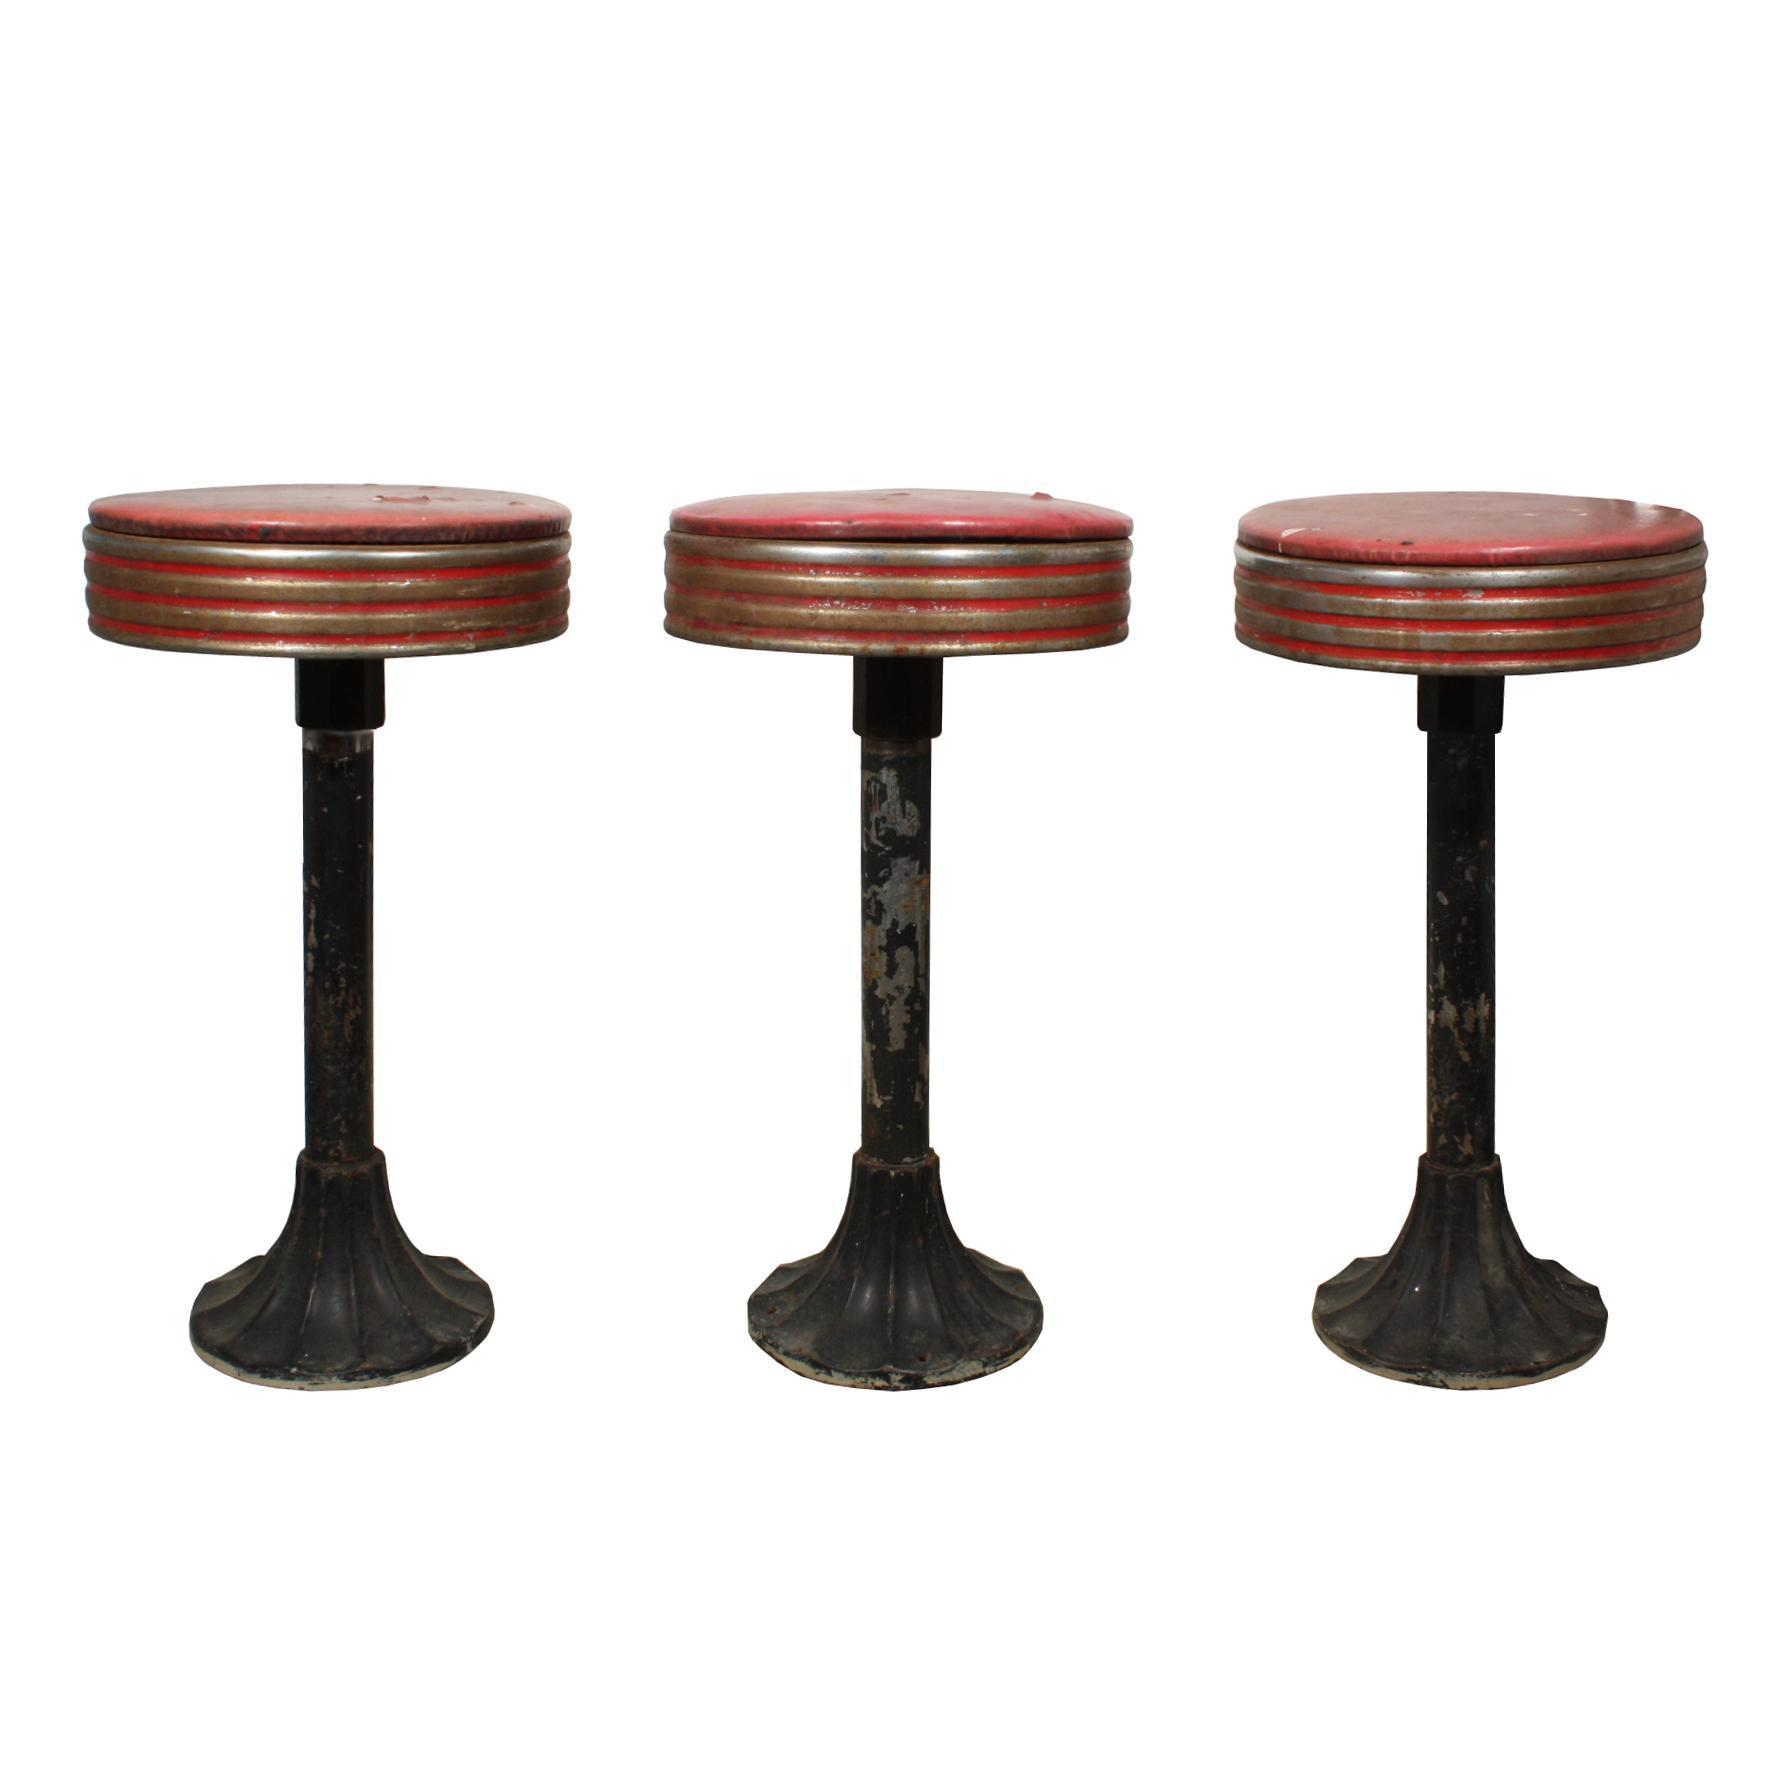 Fabulous Antique Soda Shop Stools, c.1930